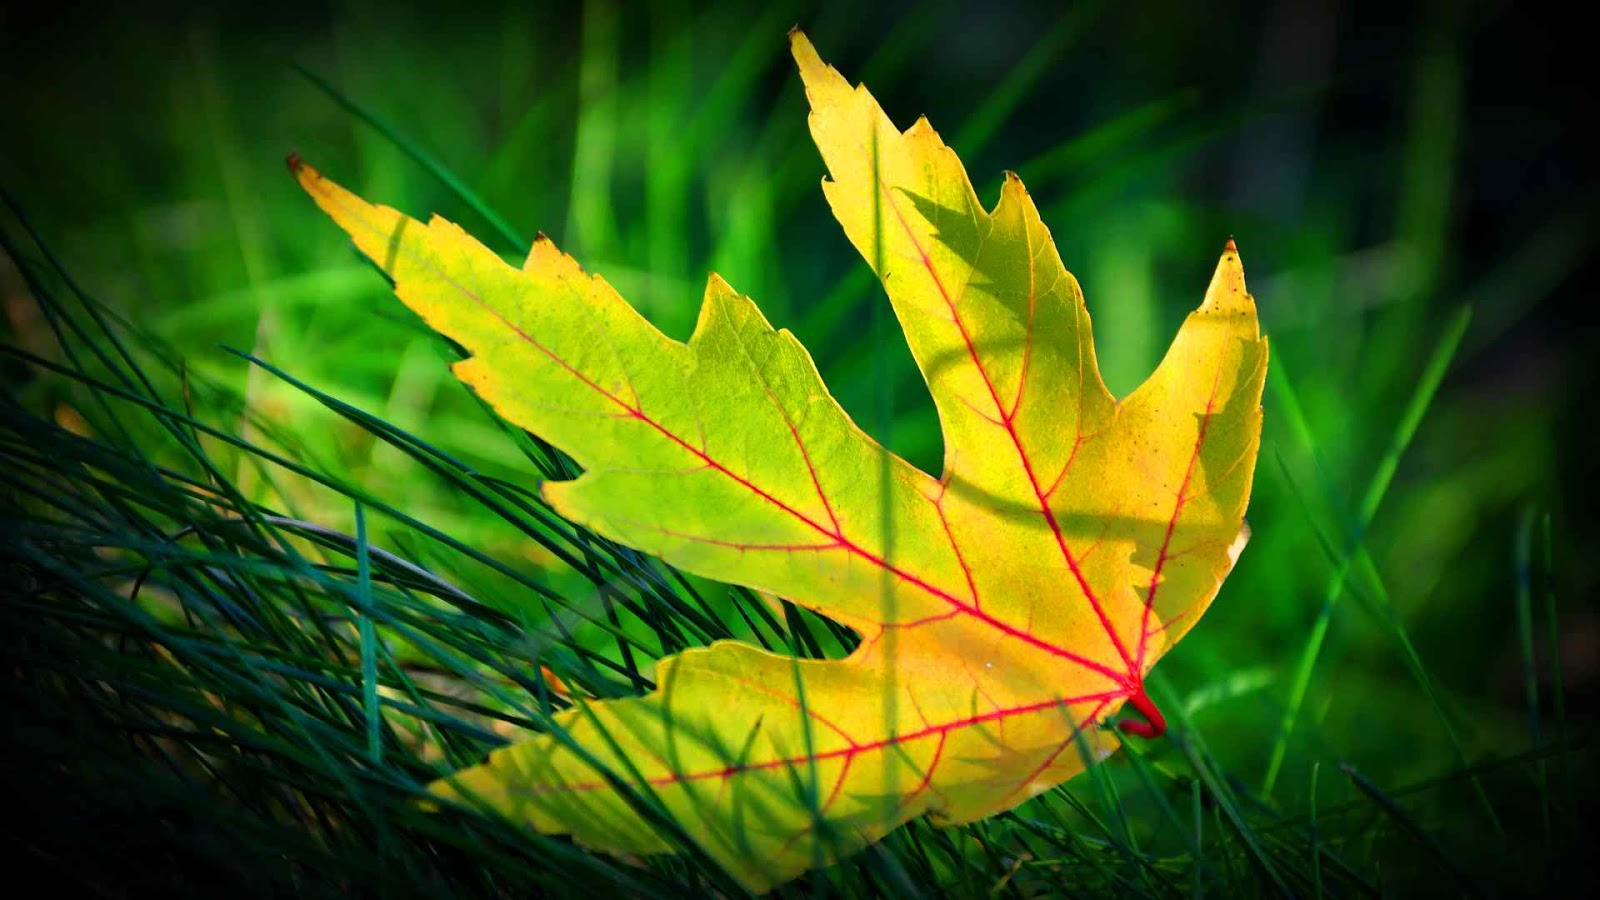 Hd wallpaper vivo - Most Beautiful Green Leaf Spring Hd Wallpaper For Iphone Desktop Tab And All Smartphone Androidvally